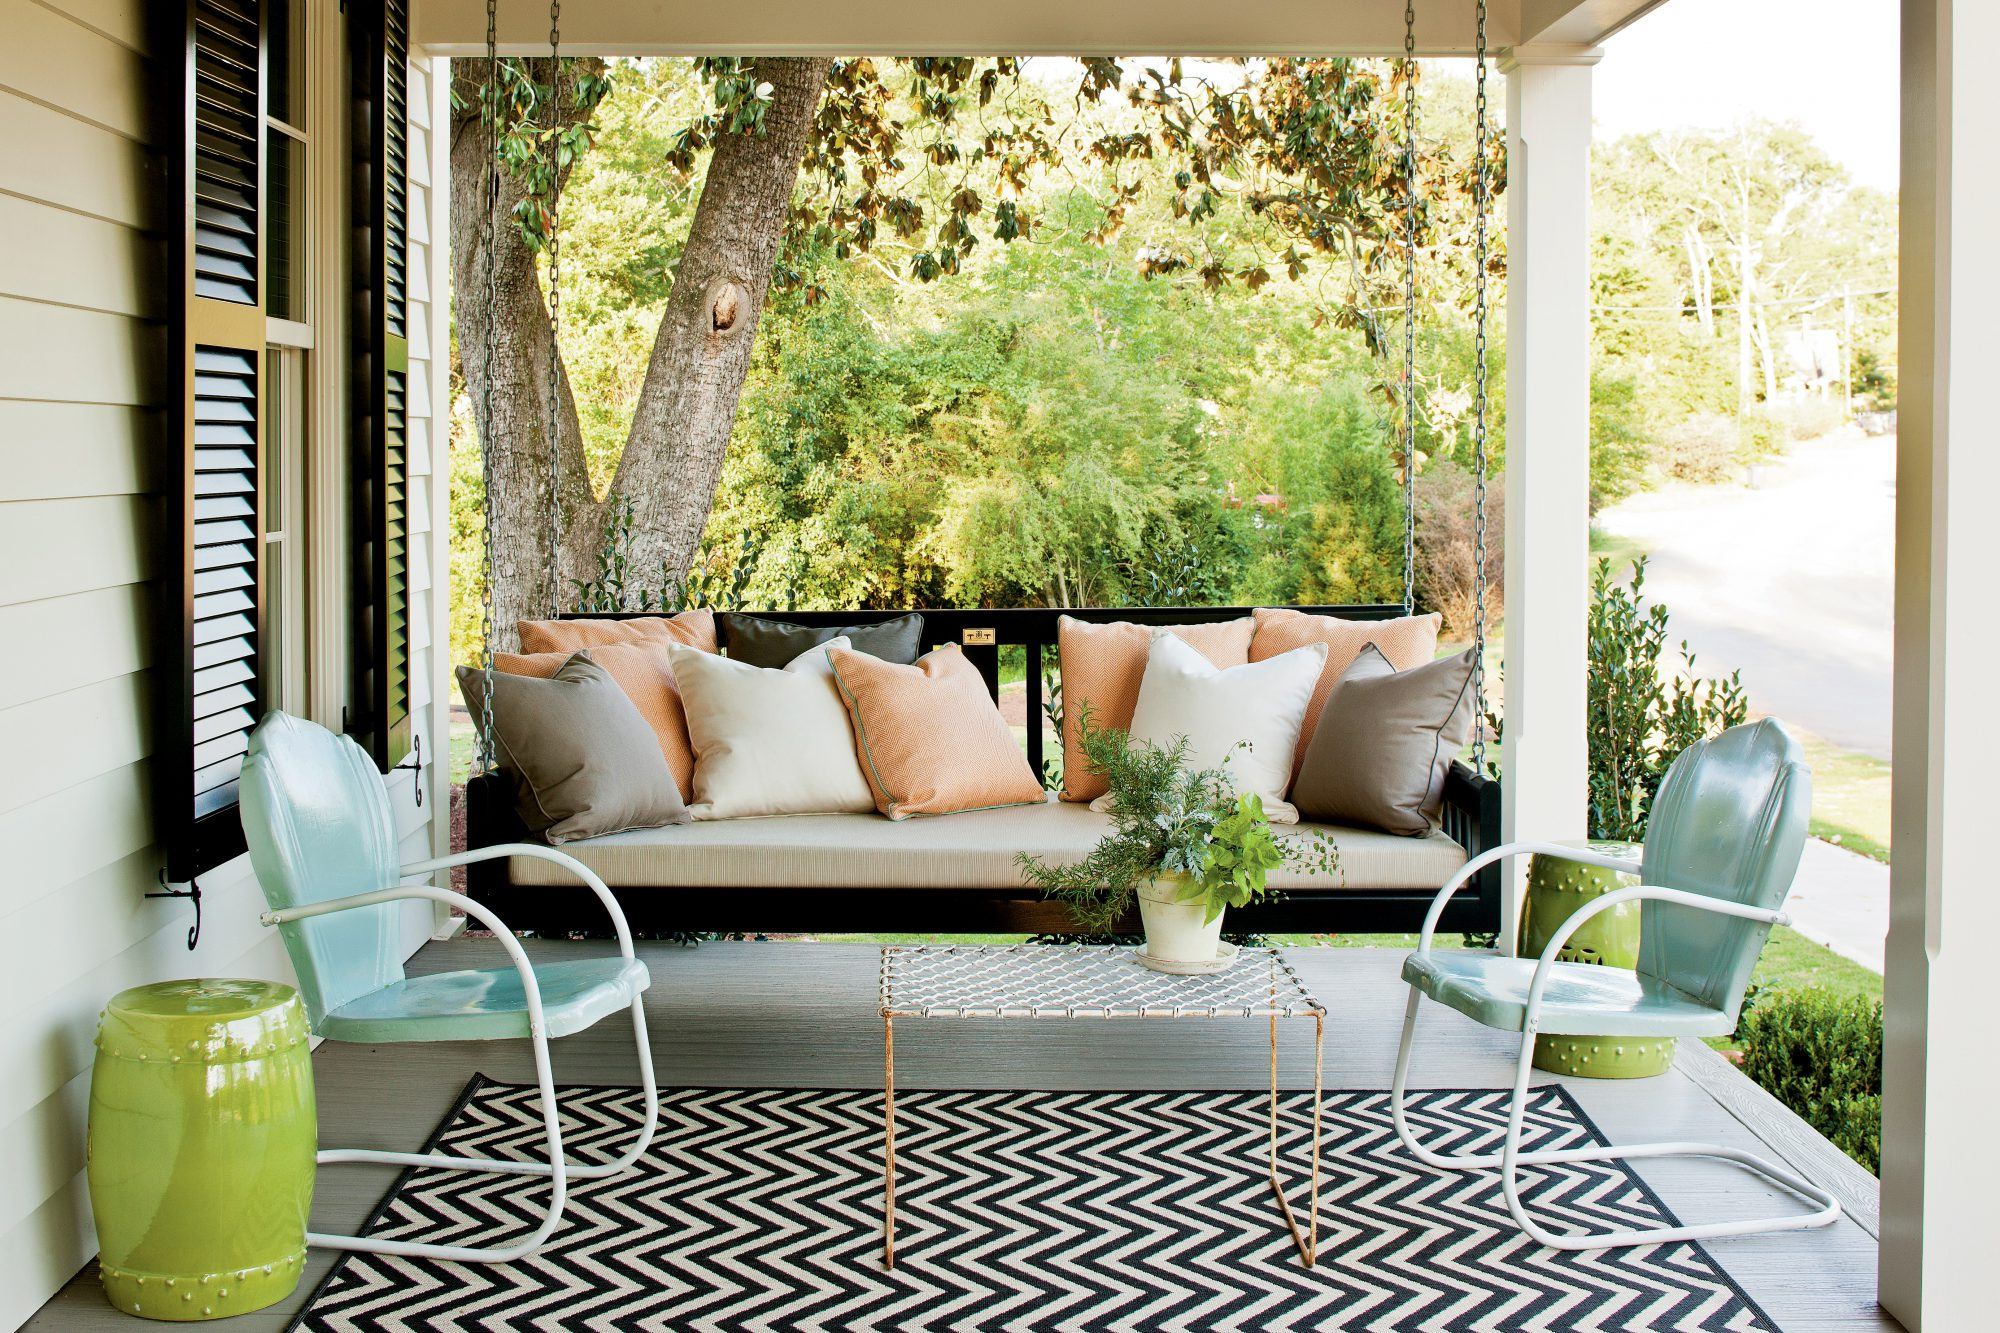 Famous Sit A Spell! 10 Peaceful Porch Swings With Regard To Outdoor Porch Swings (View 18 of 30)